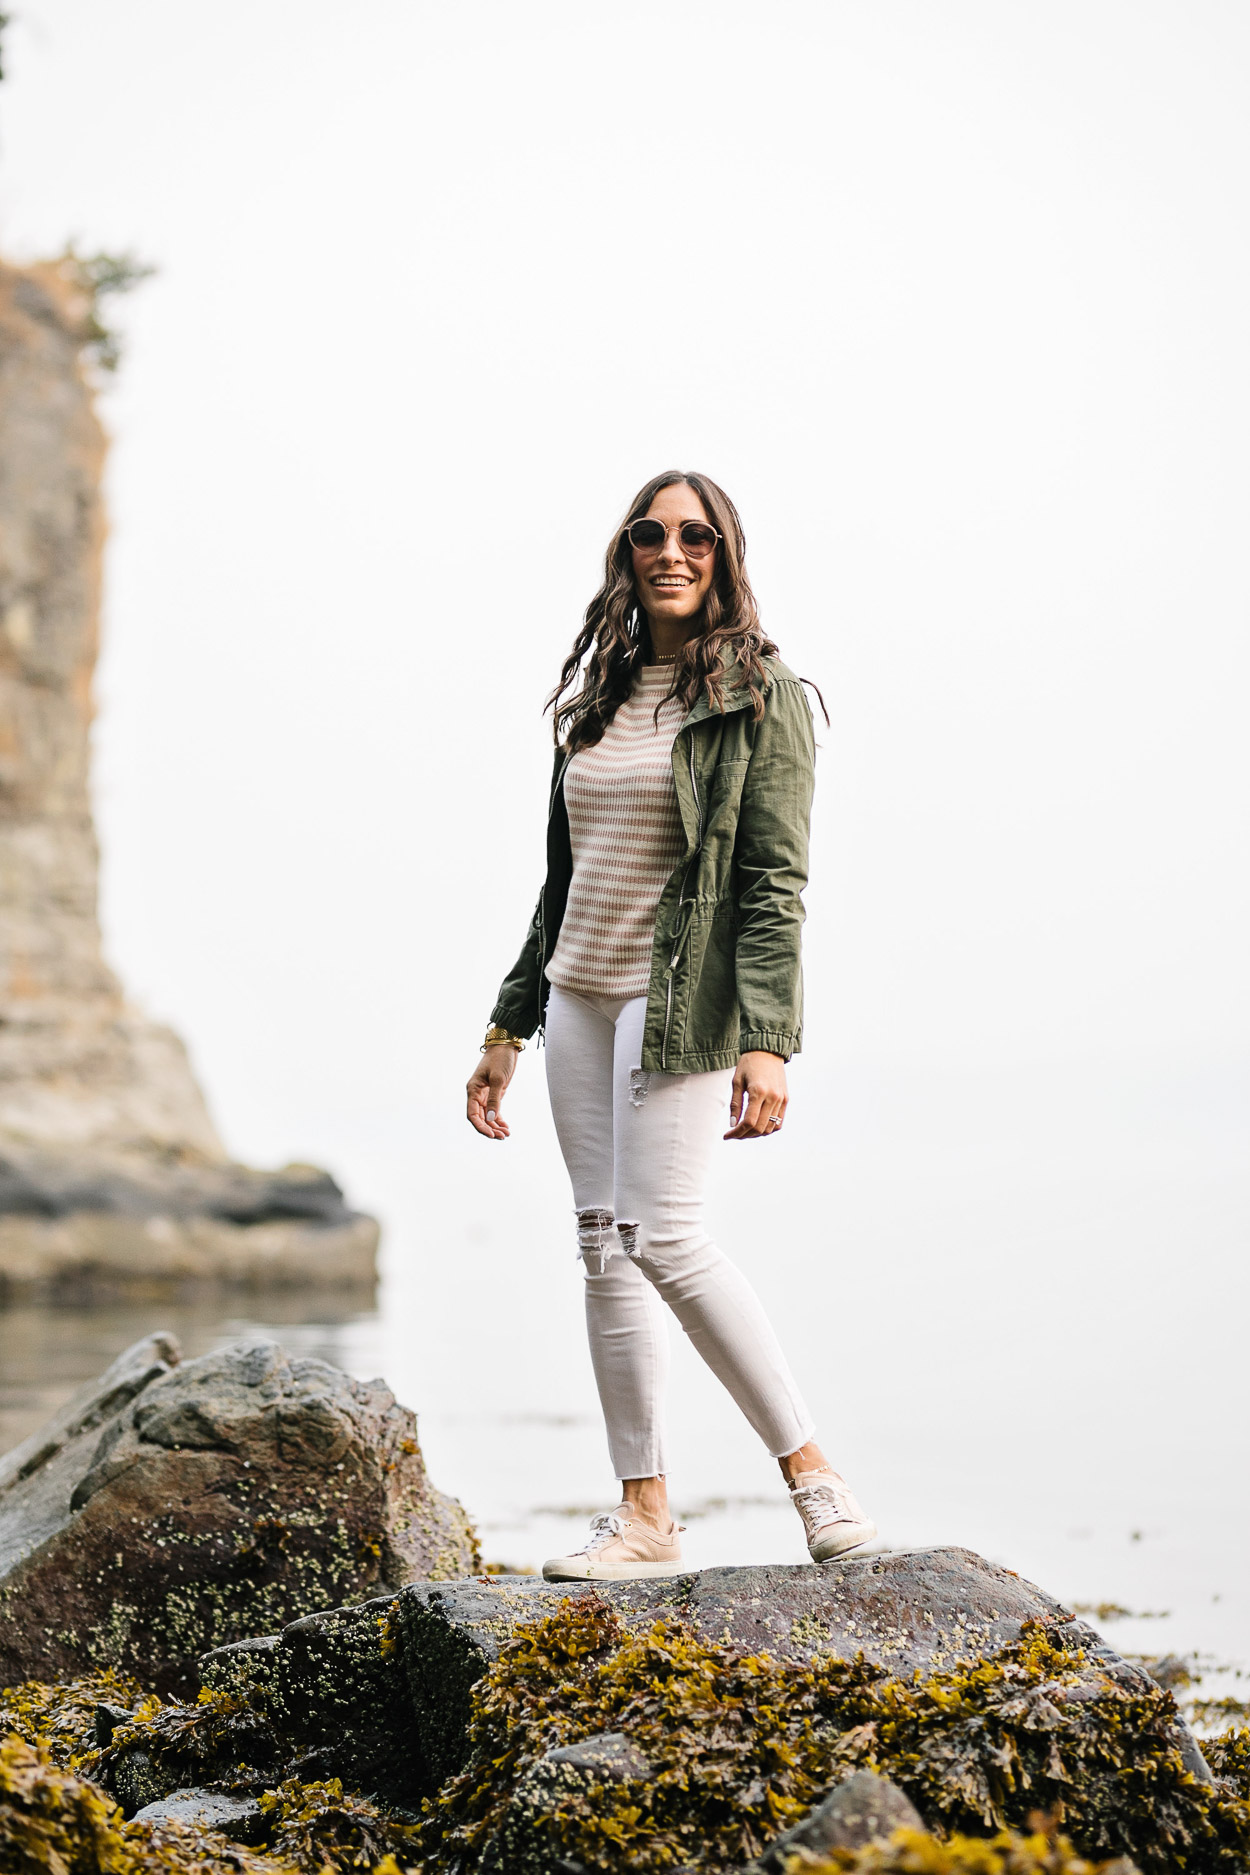 JCrew striped sweater is always affordable fall fashion as styled by AGlamLifestyle blogger Amanda in Vancouver at Siwash Rock